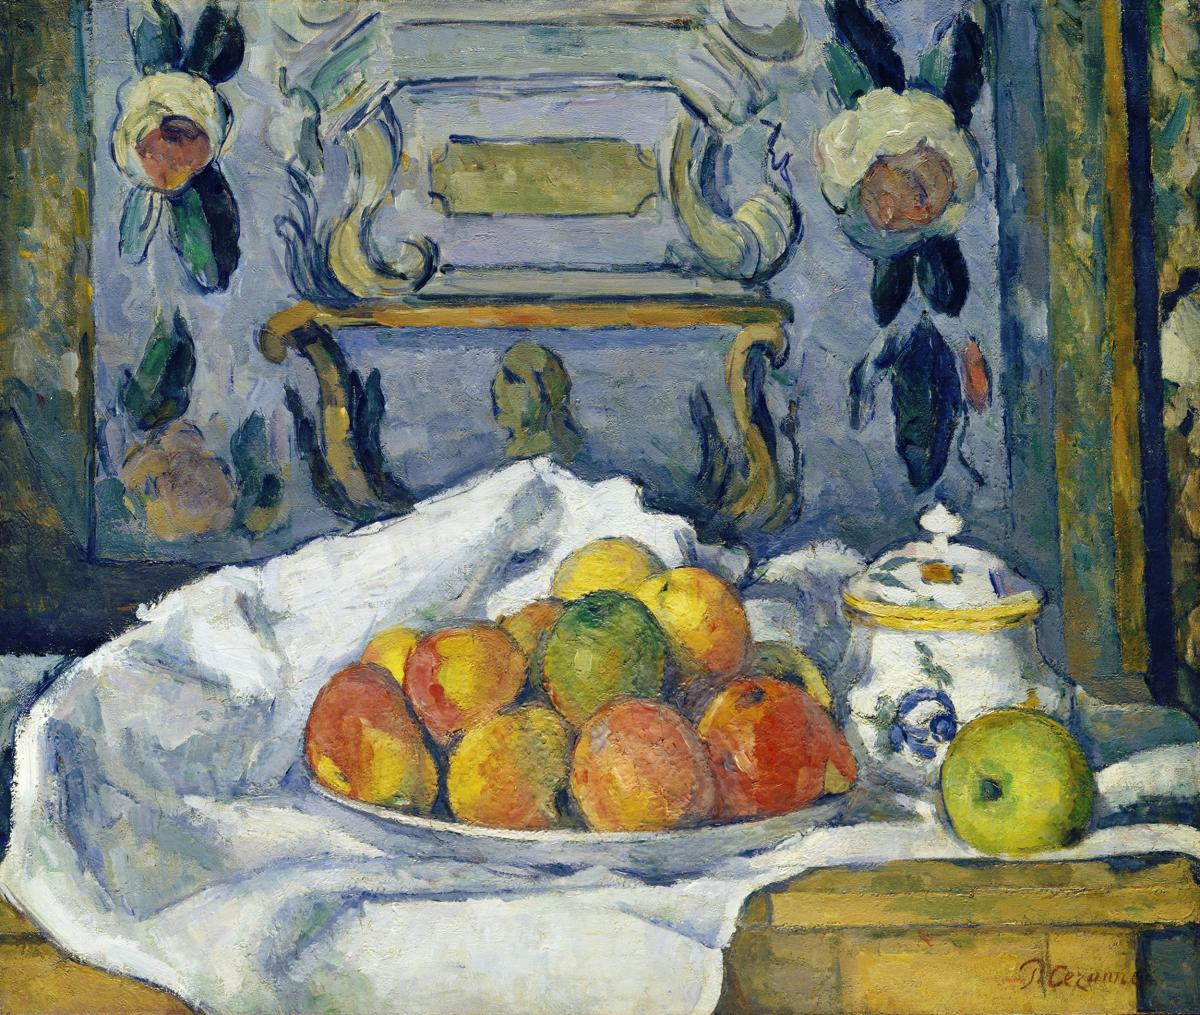 Dish of Apples (ca. 1876–1877) by Paul Cézanne. Original from The MET Museum.